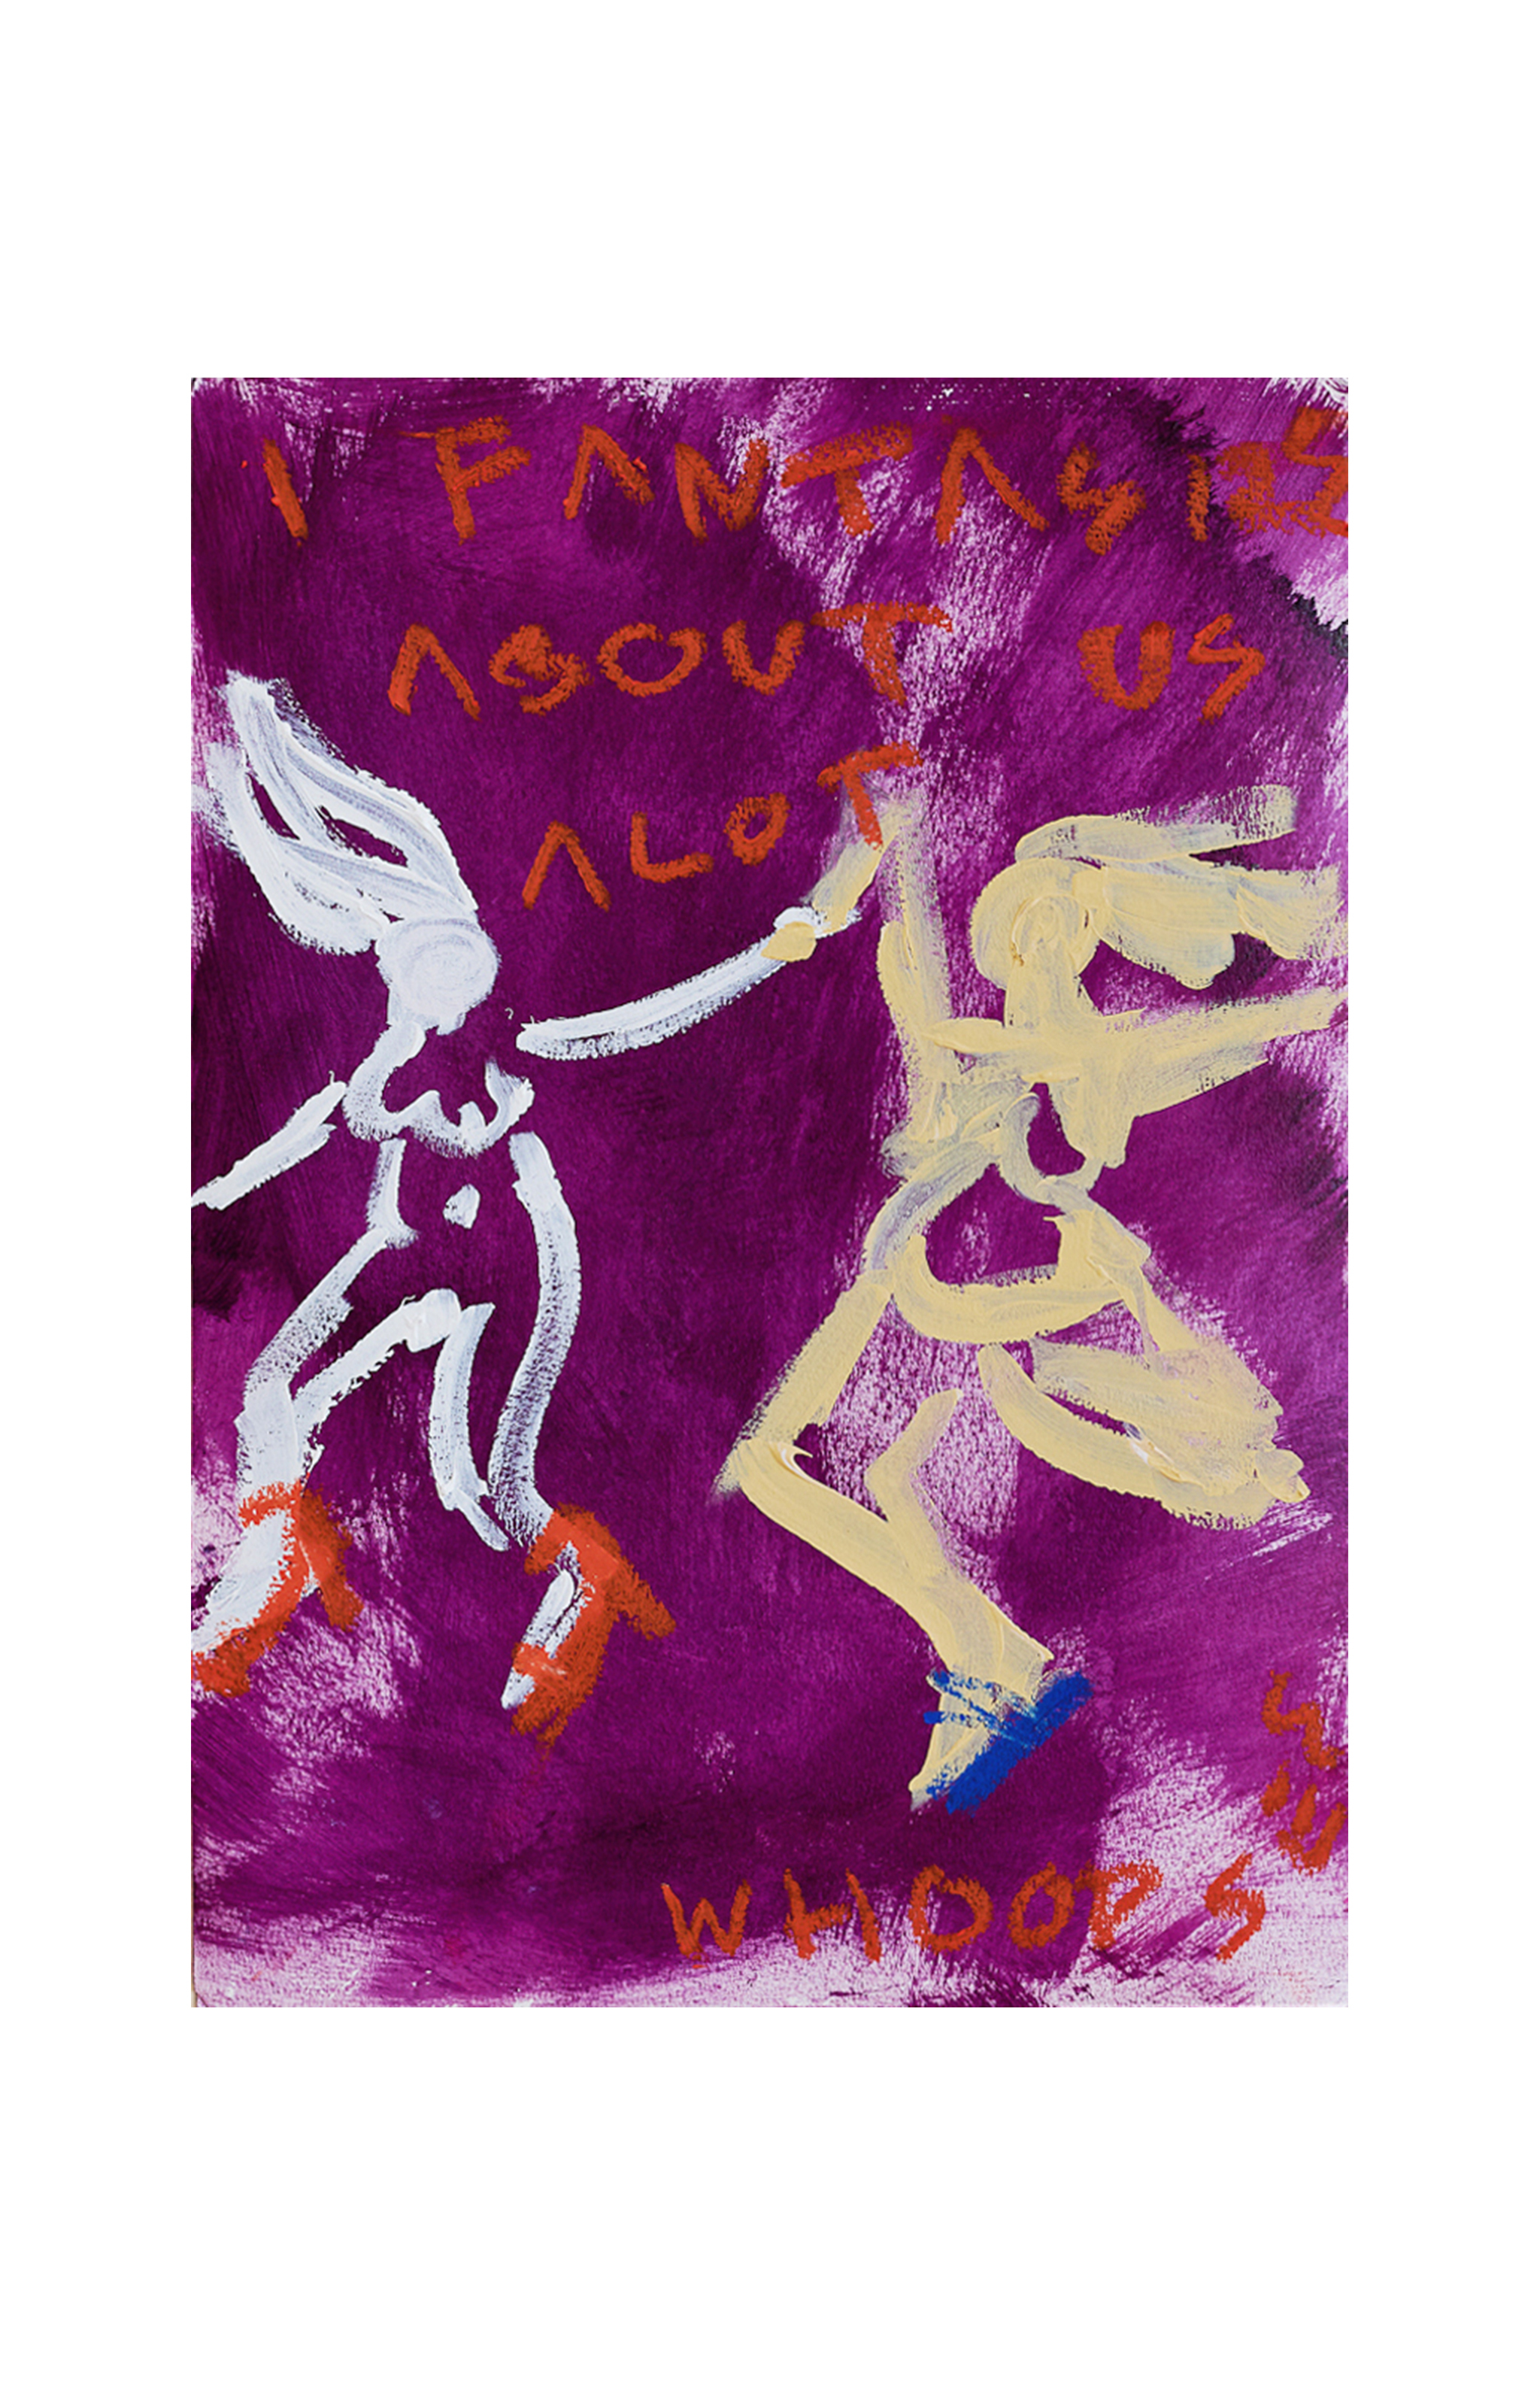 Marisa Mu At the above I Fantasize About Us Alot 29 7cm x 42cm acrylic and oil pastels on coldpress paper White